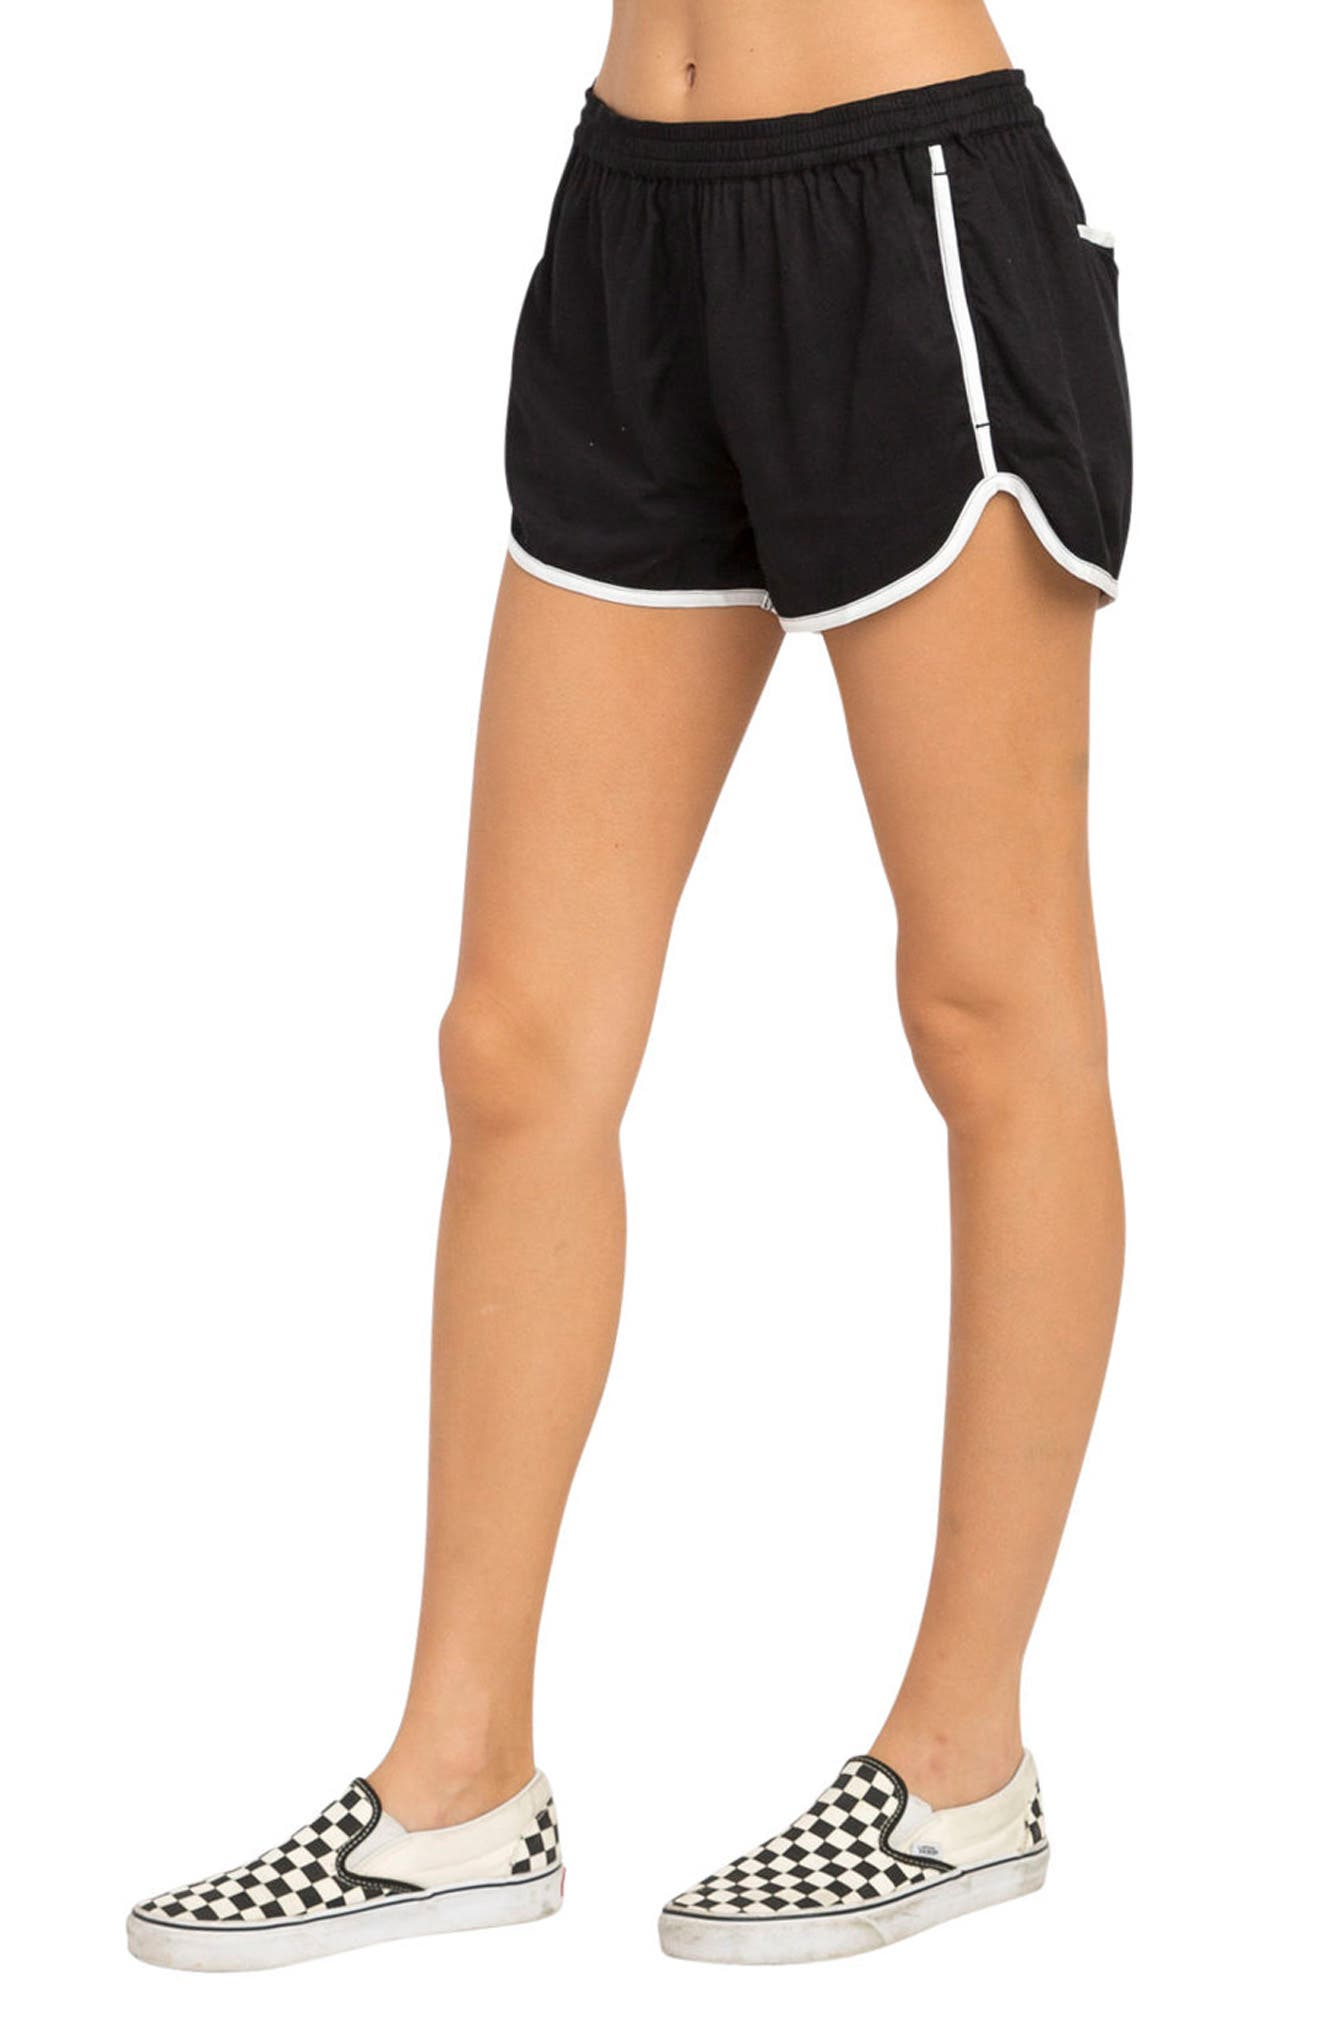 Cruising Dolphin Shorts,                             Alternate thumbnail 4, color,                             Black